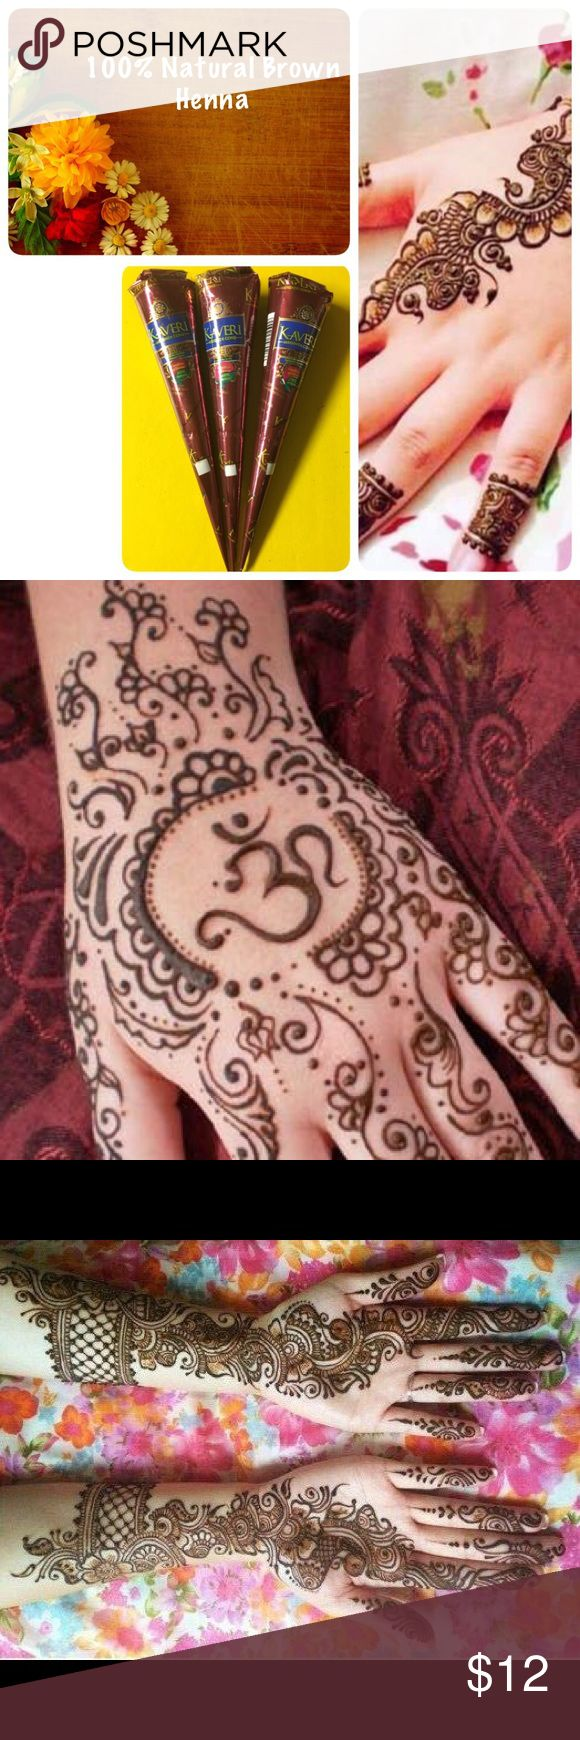 1000 Ideas About Henna Cones On Pinterest How To Make Henna